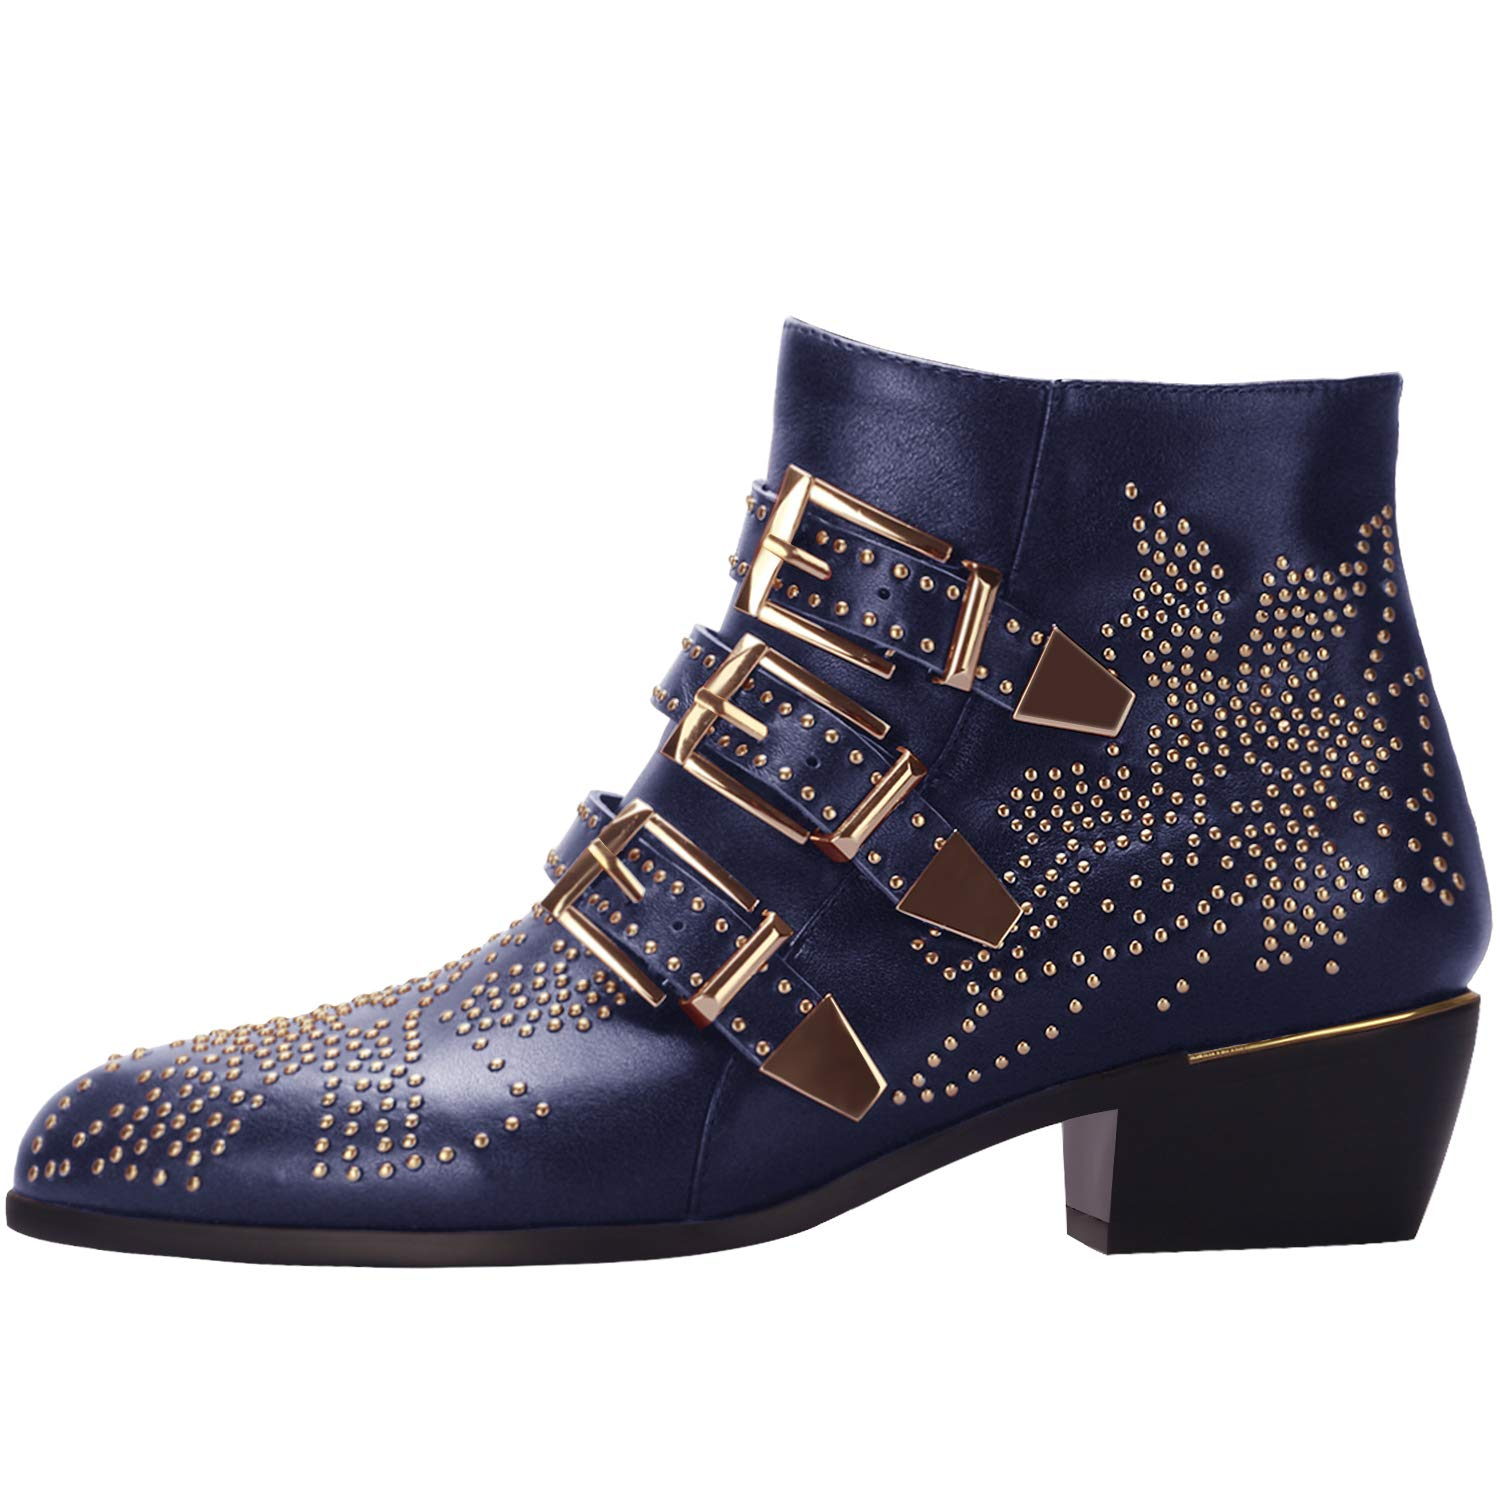 15420214 Comfity Boots for Women, Women's Leather Boot Rivets Studded Shoes ...